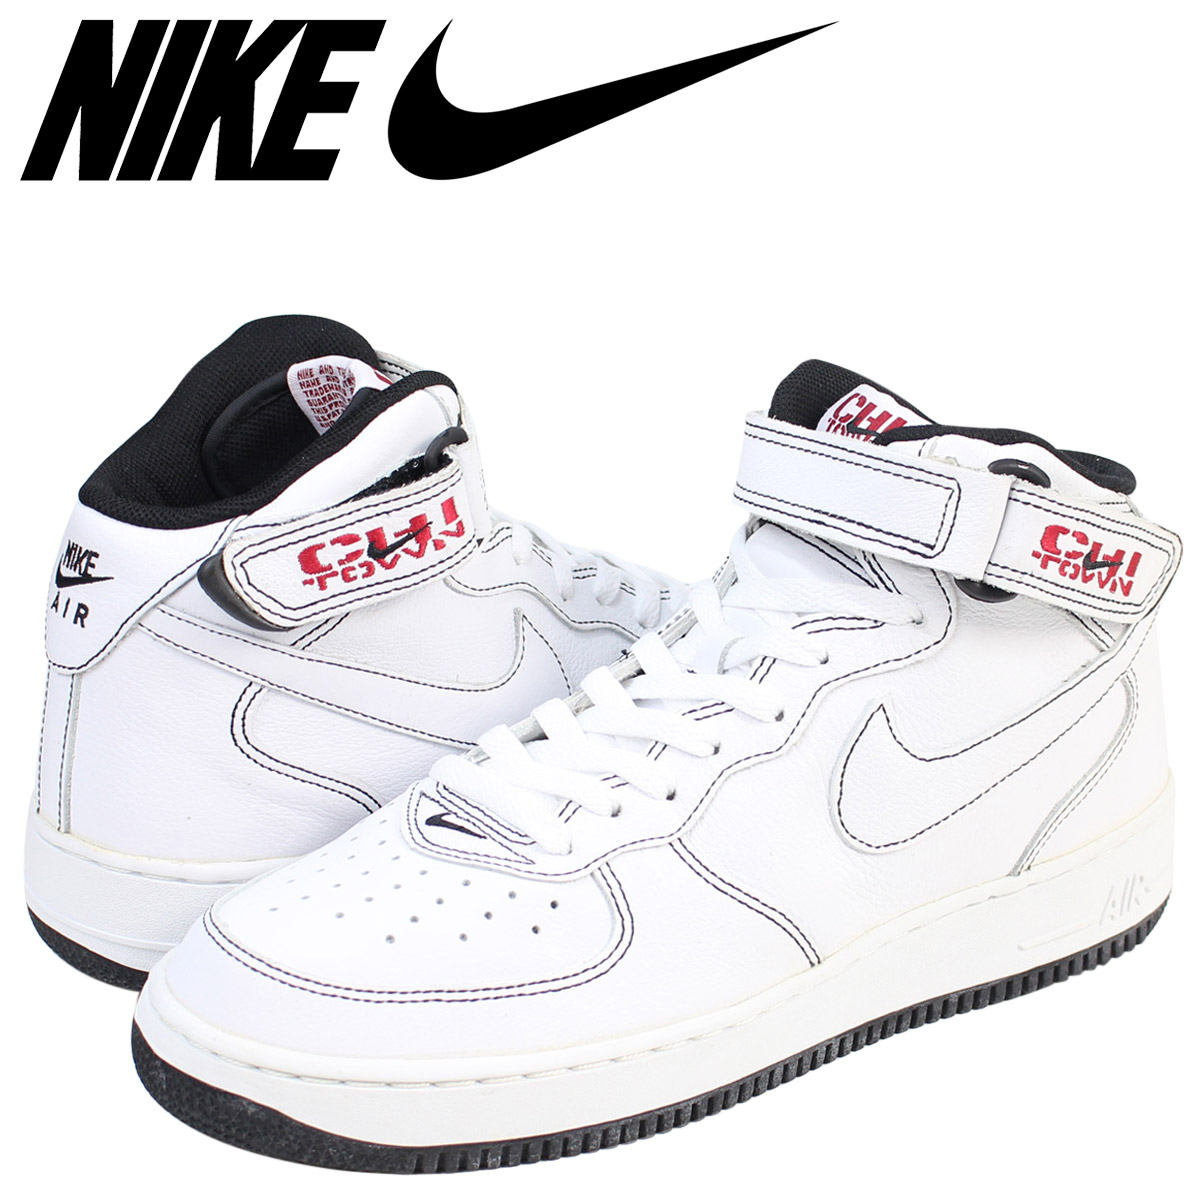 NIKE Nike air force 1 mid sneakers AIR FORCE 1 MID CHI TOWN 02 men's 304,096 112 shoes white white